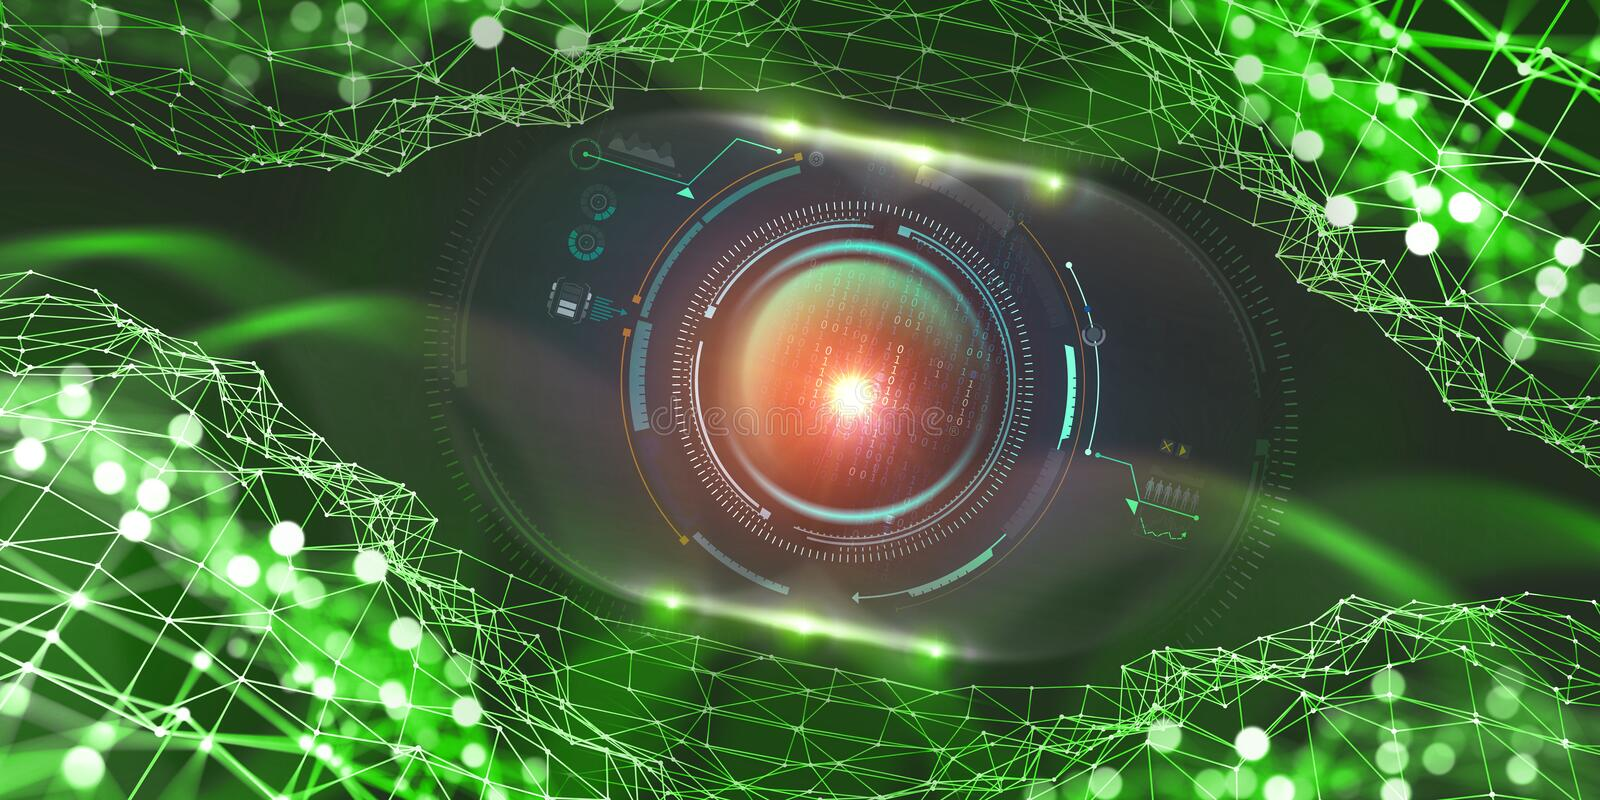 Artificial intelligence in the global network. Digital technologies of the future. Computer Mind Control. 3D illustration on tech background royalty free illustration